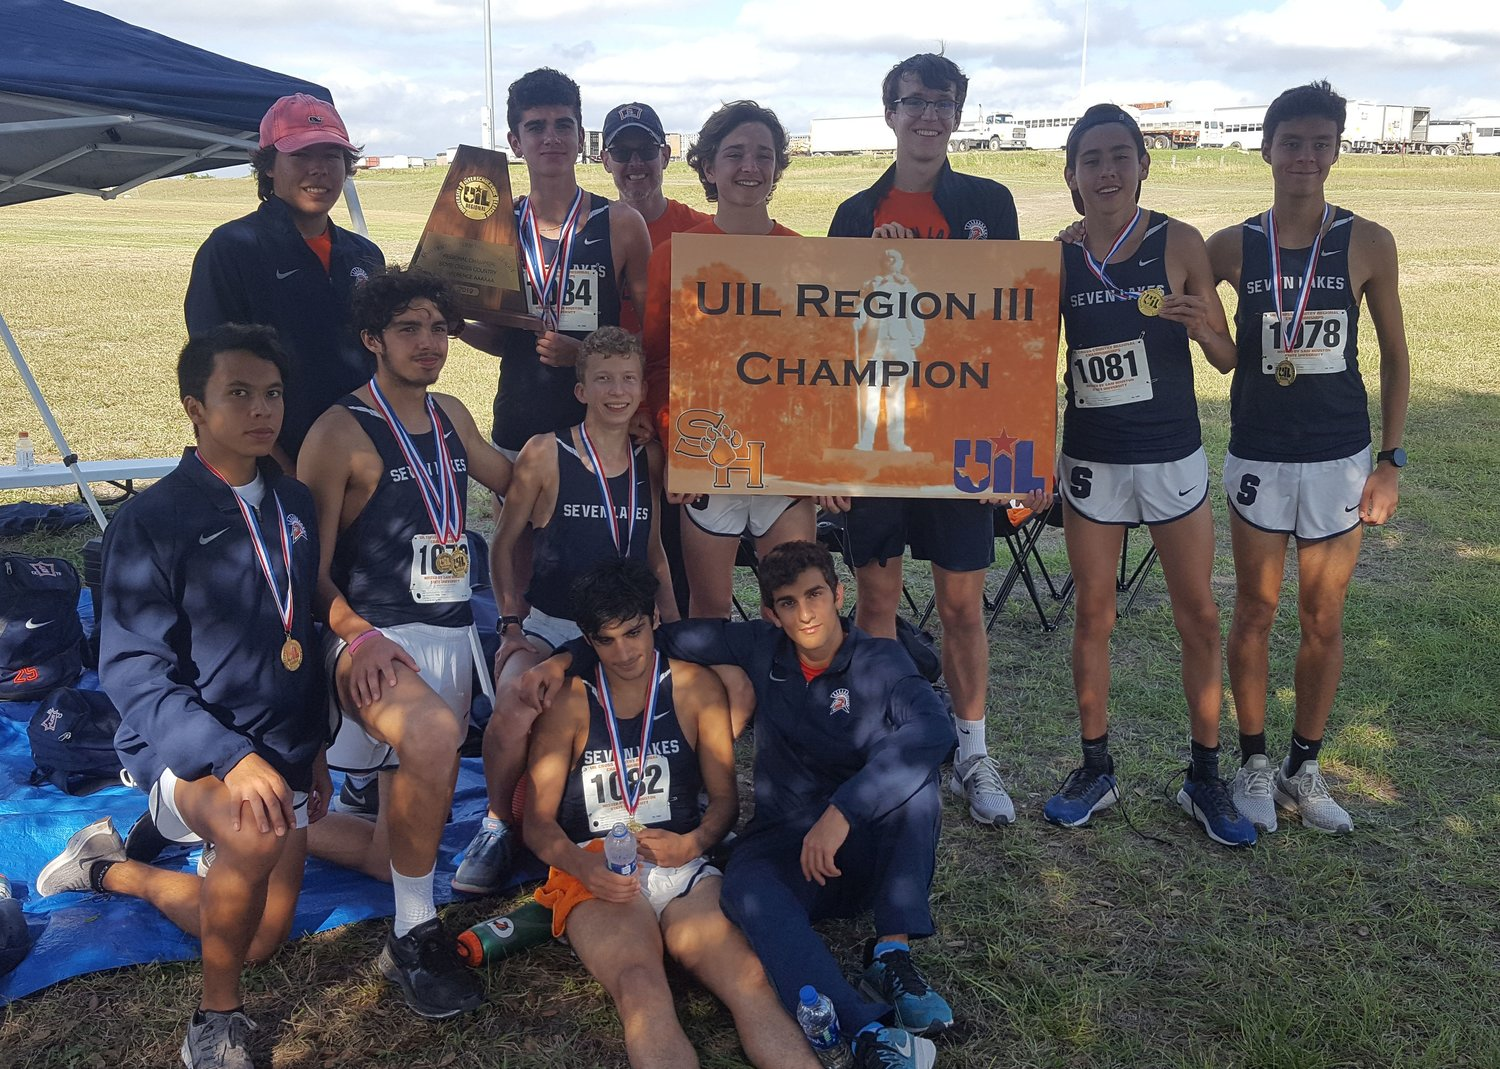 Seven Lakes boys: Front row: Juan Royo and Jad Wardeh. Middle row: Javier Pineros, Corbin Brescher and Spencer Seale. Back row: Michael Huff, Carson Slater, head coach Scott Kenney, Peyton Hannah, Ryan Caffrey, Ruben Rojas and Fernando Hernandez.